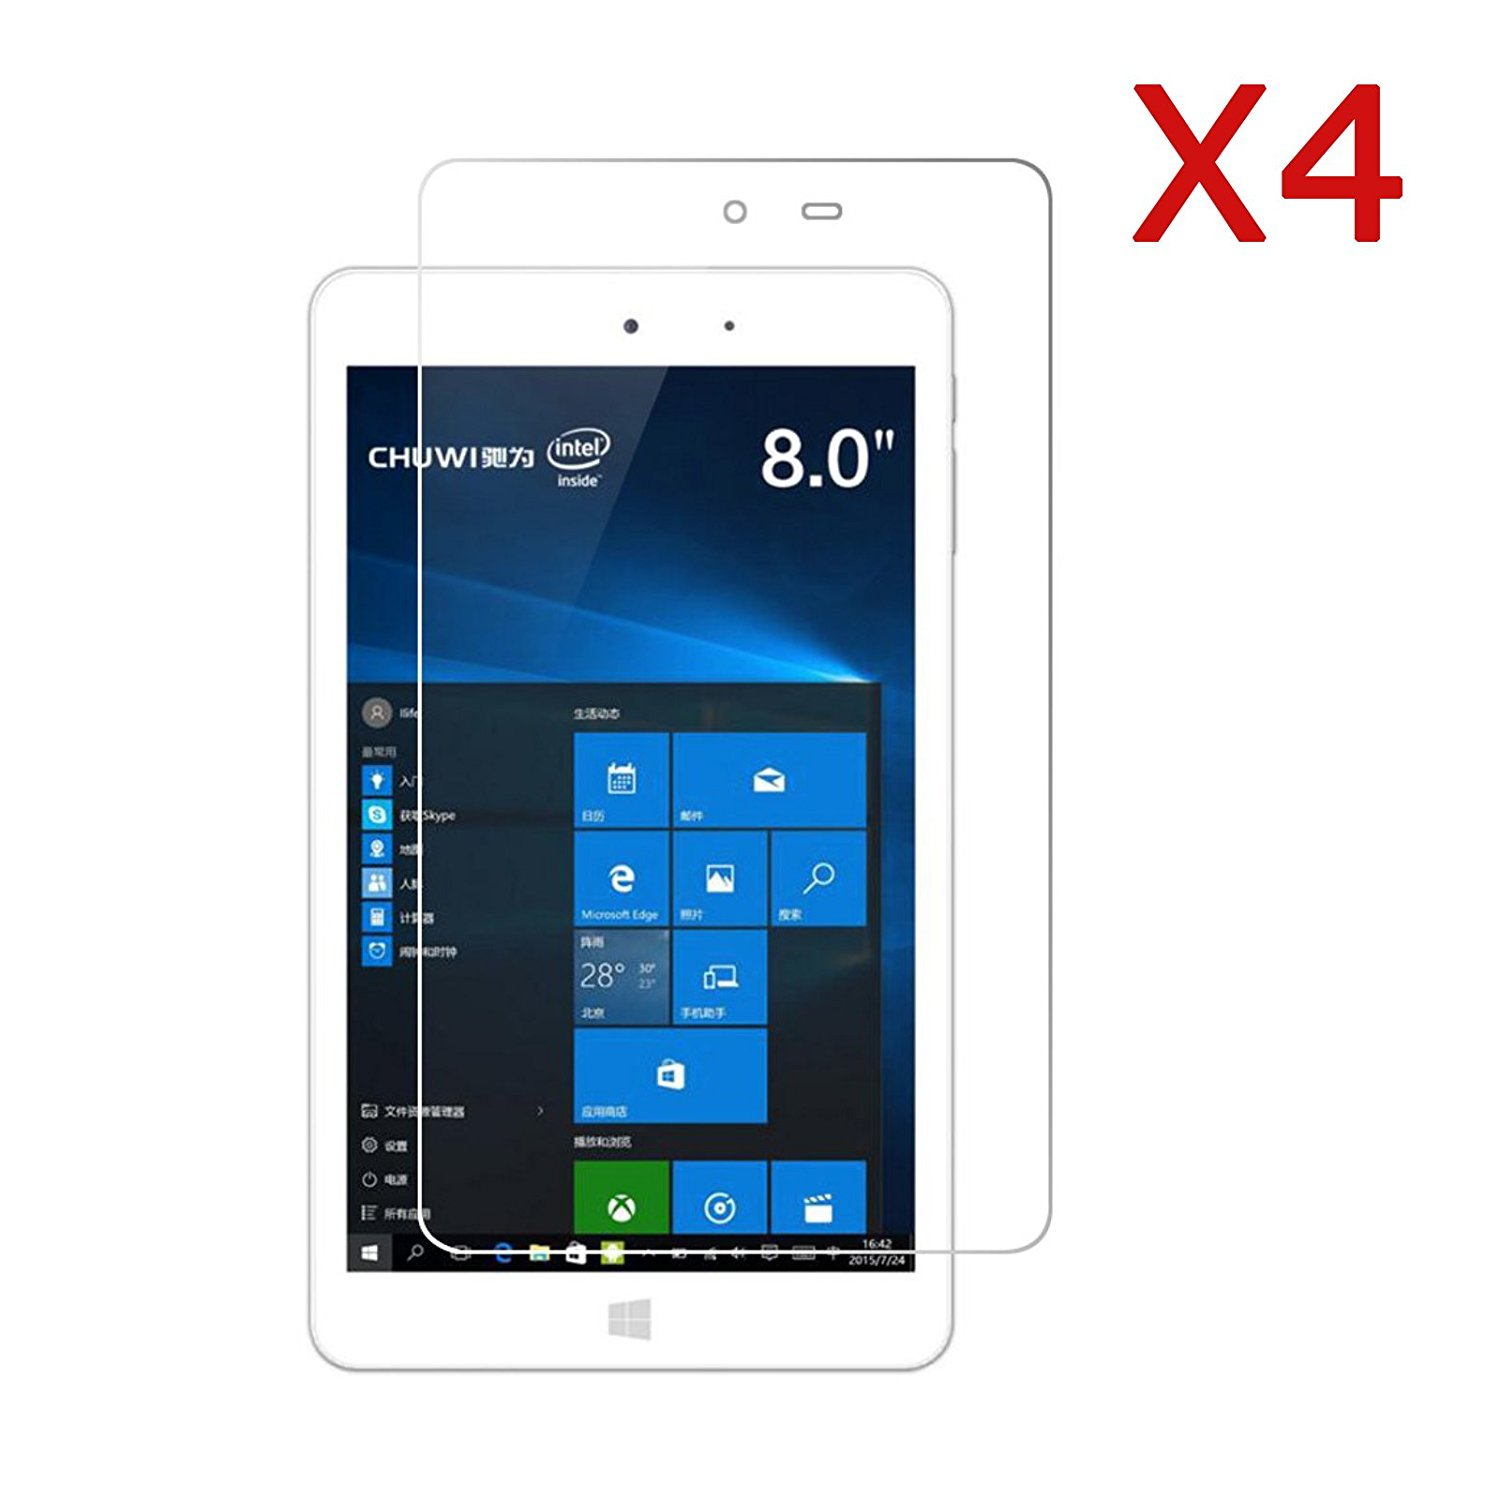 Chuwi Hi8 Screen Protector, Transwon 4-Pack Ultra-Clear HD Screen Protector for CHUWI HI8 Tablet PC - High Definition Invisible Protective Screen Film with Cleaning Cloth